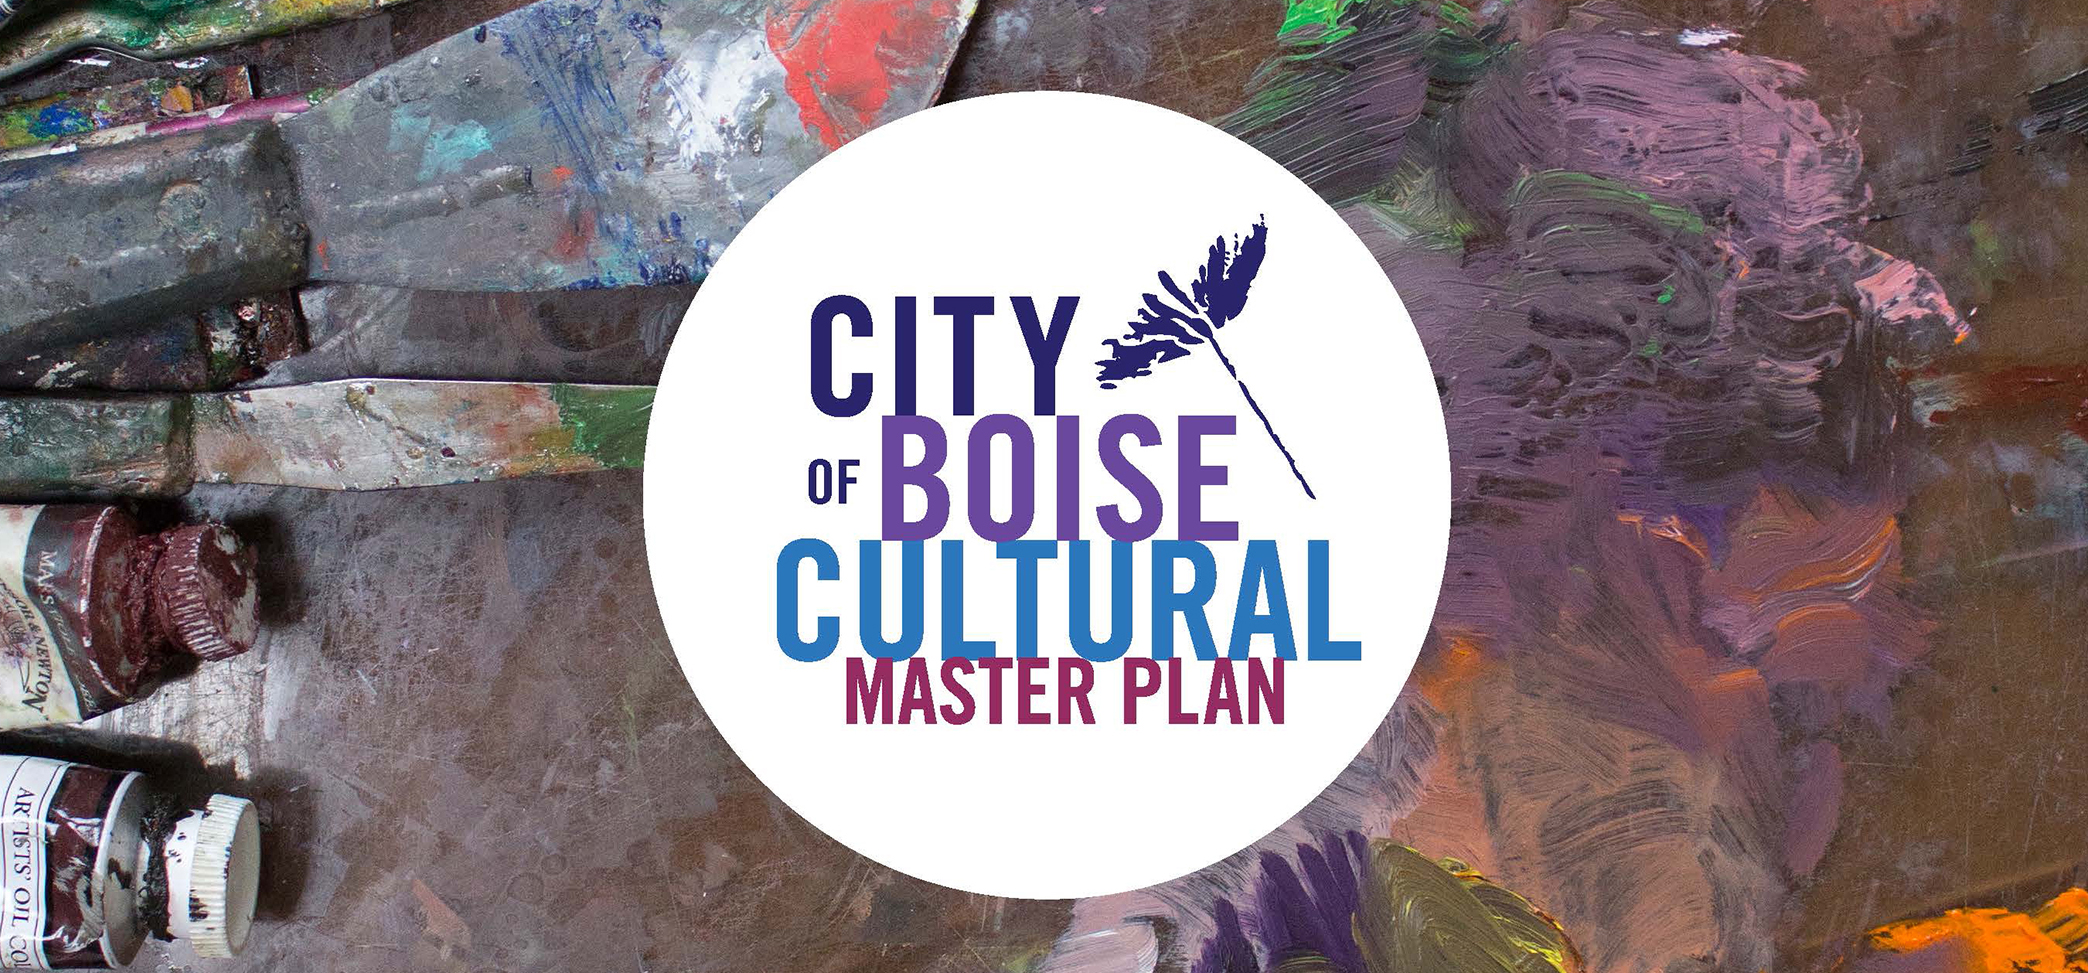 City of Boise Cultural Master Plan text image